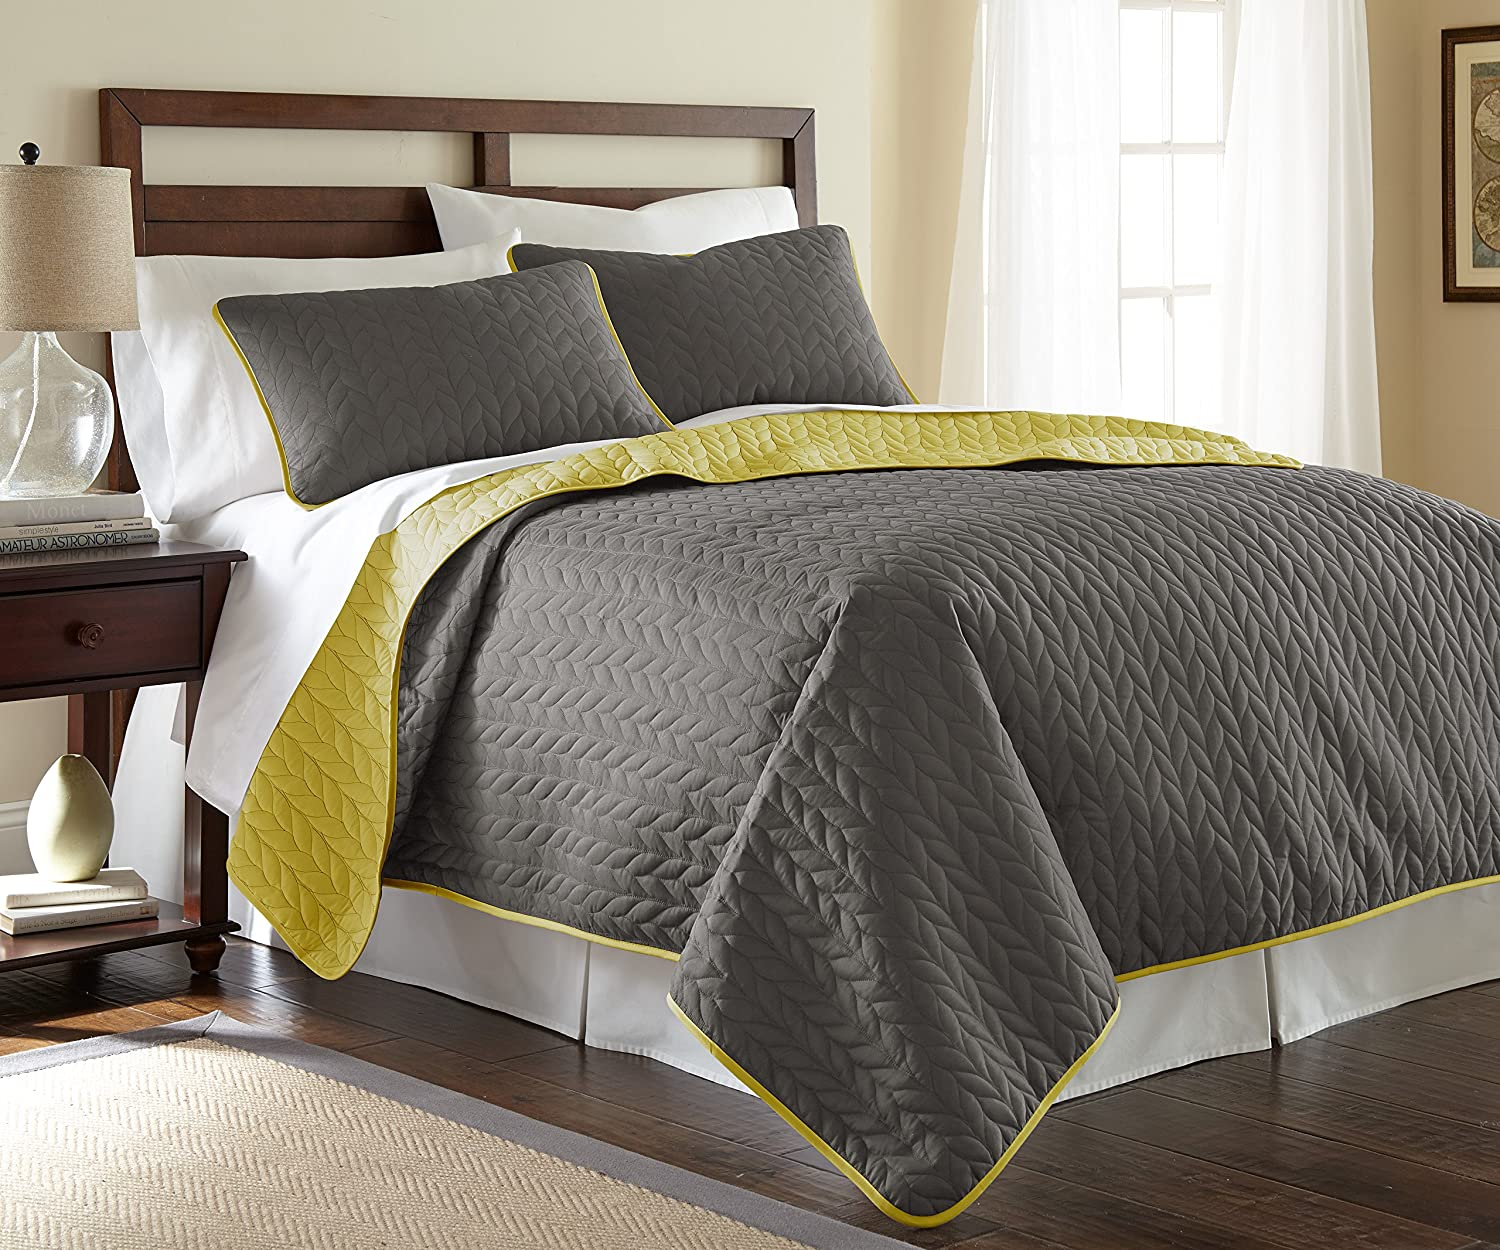 Amrapur Overseas Leaf Solid Reversible Quilted 3-piece Coverlet Set, King, Steel Grey/Bamboo